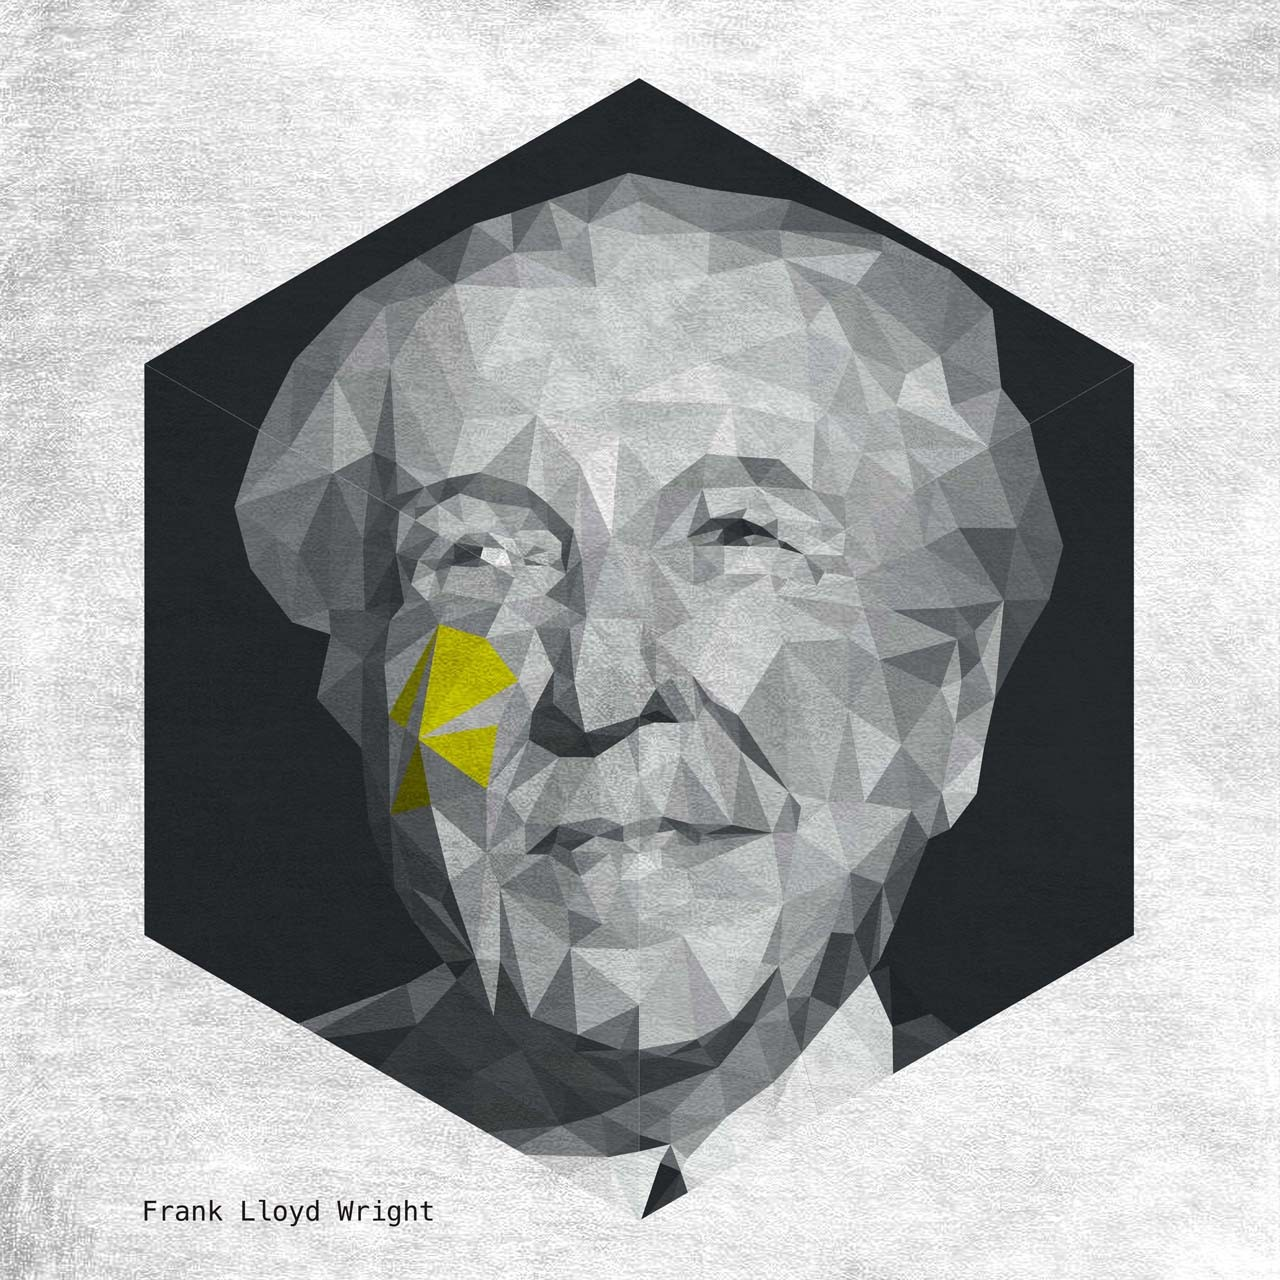 FRANK LLOYD WRIGHT. Image Courtesy of Yannick Martin